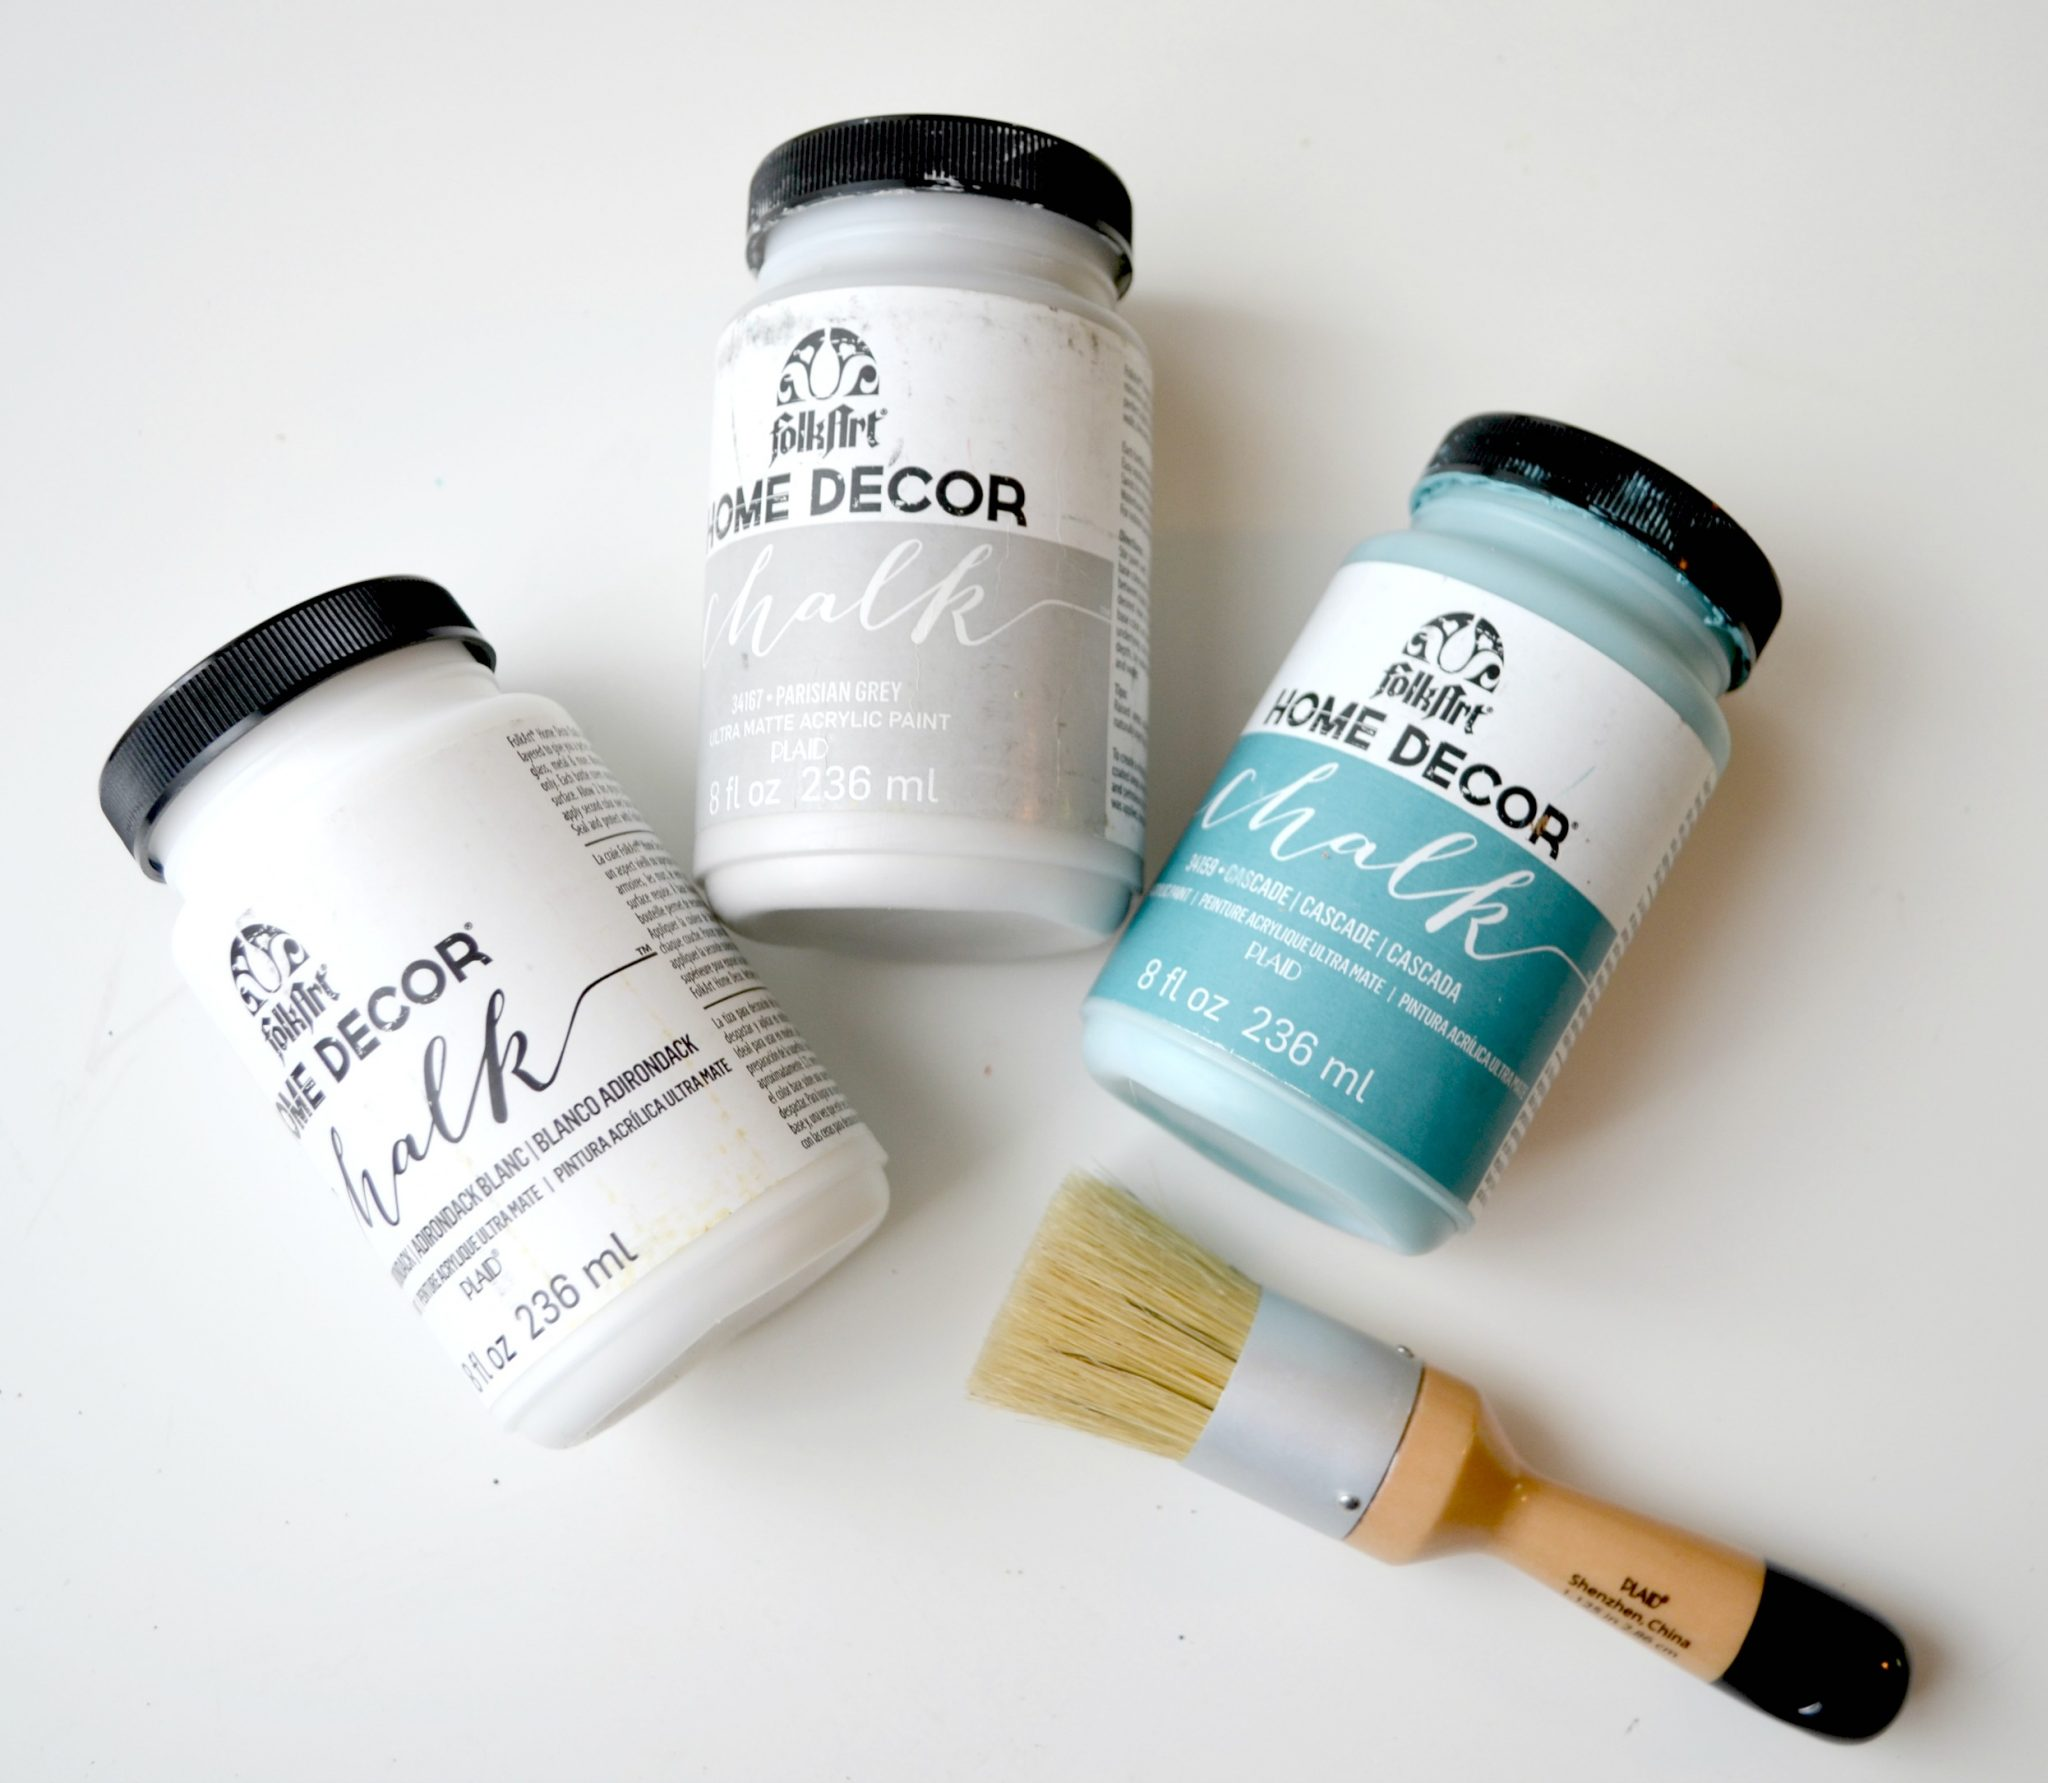 The FolkArt Home Decor Chalk Brush Is Made Specifically To Work Well With  This Paint, And Comes In Two Sizes, So You Can Choose The One That Best  Fits Your ...